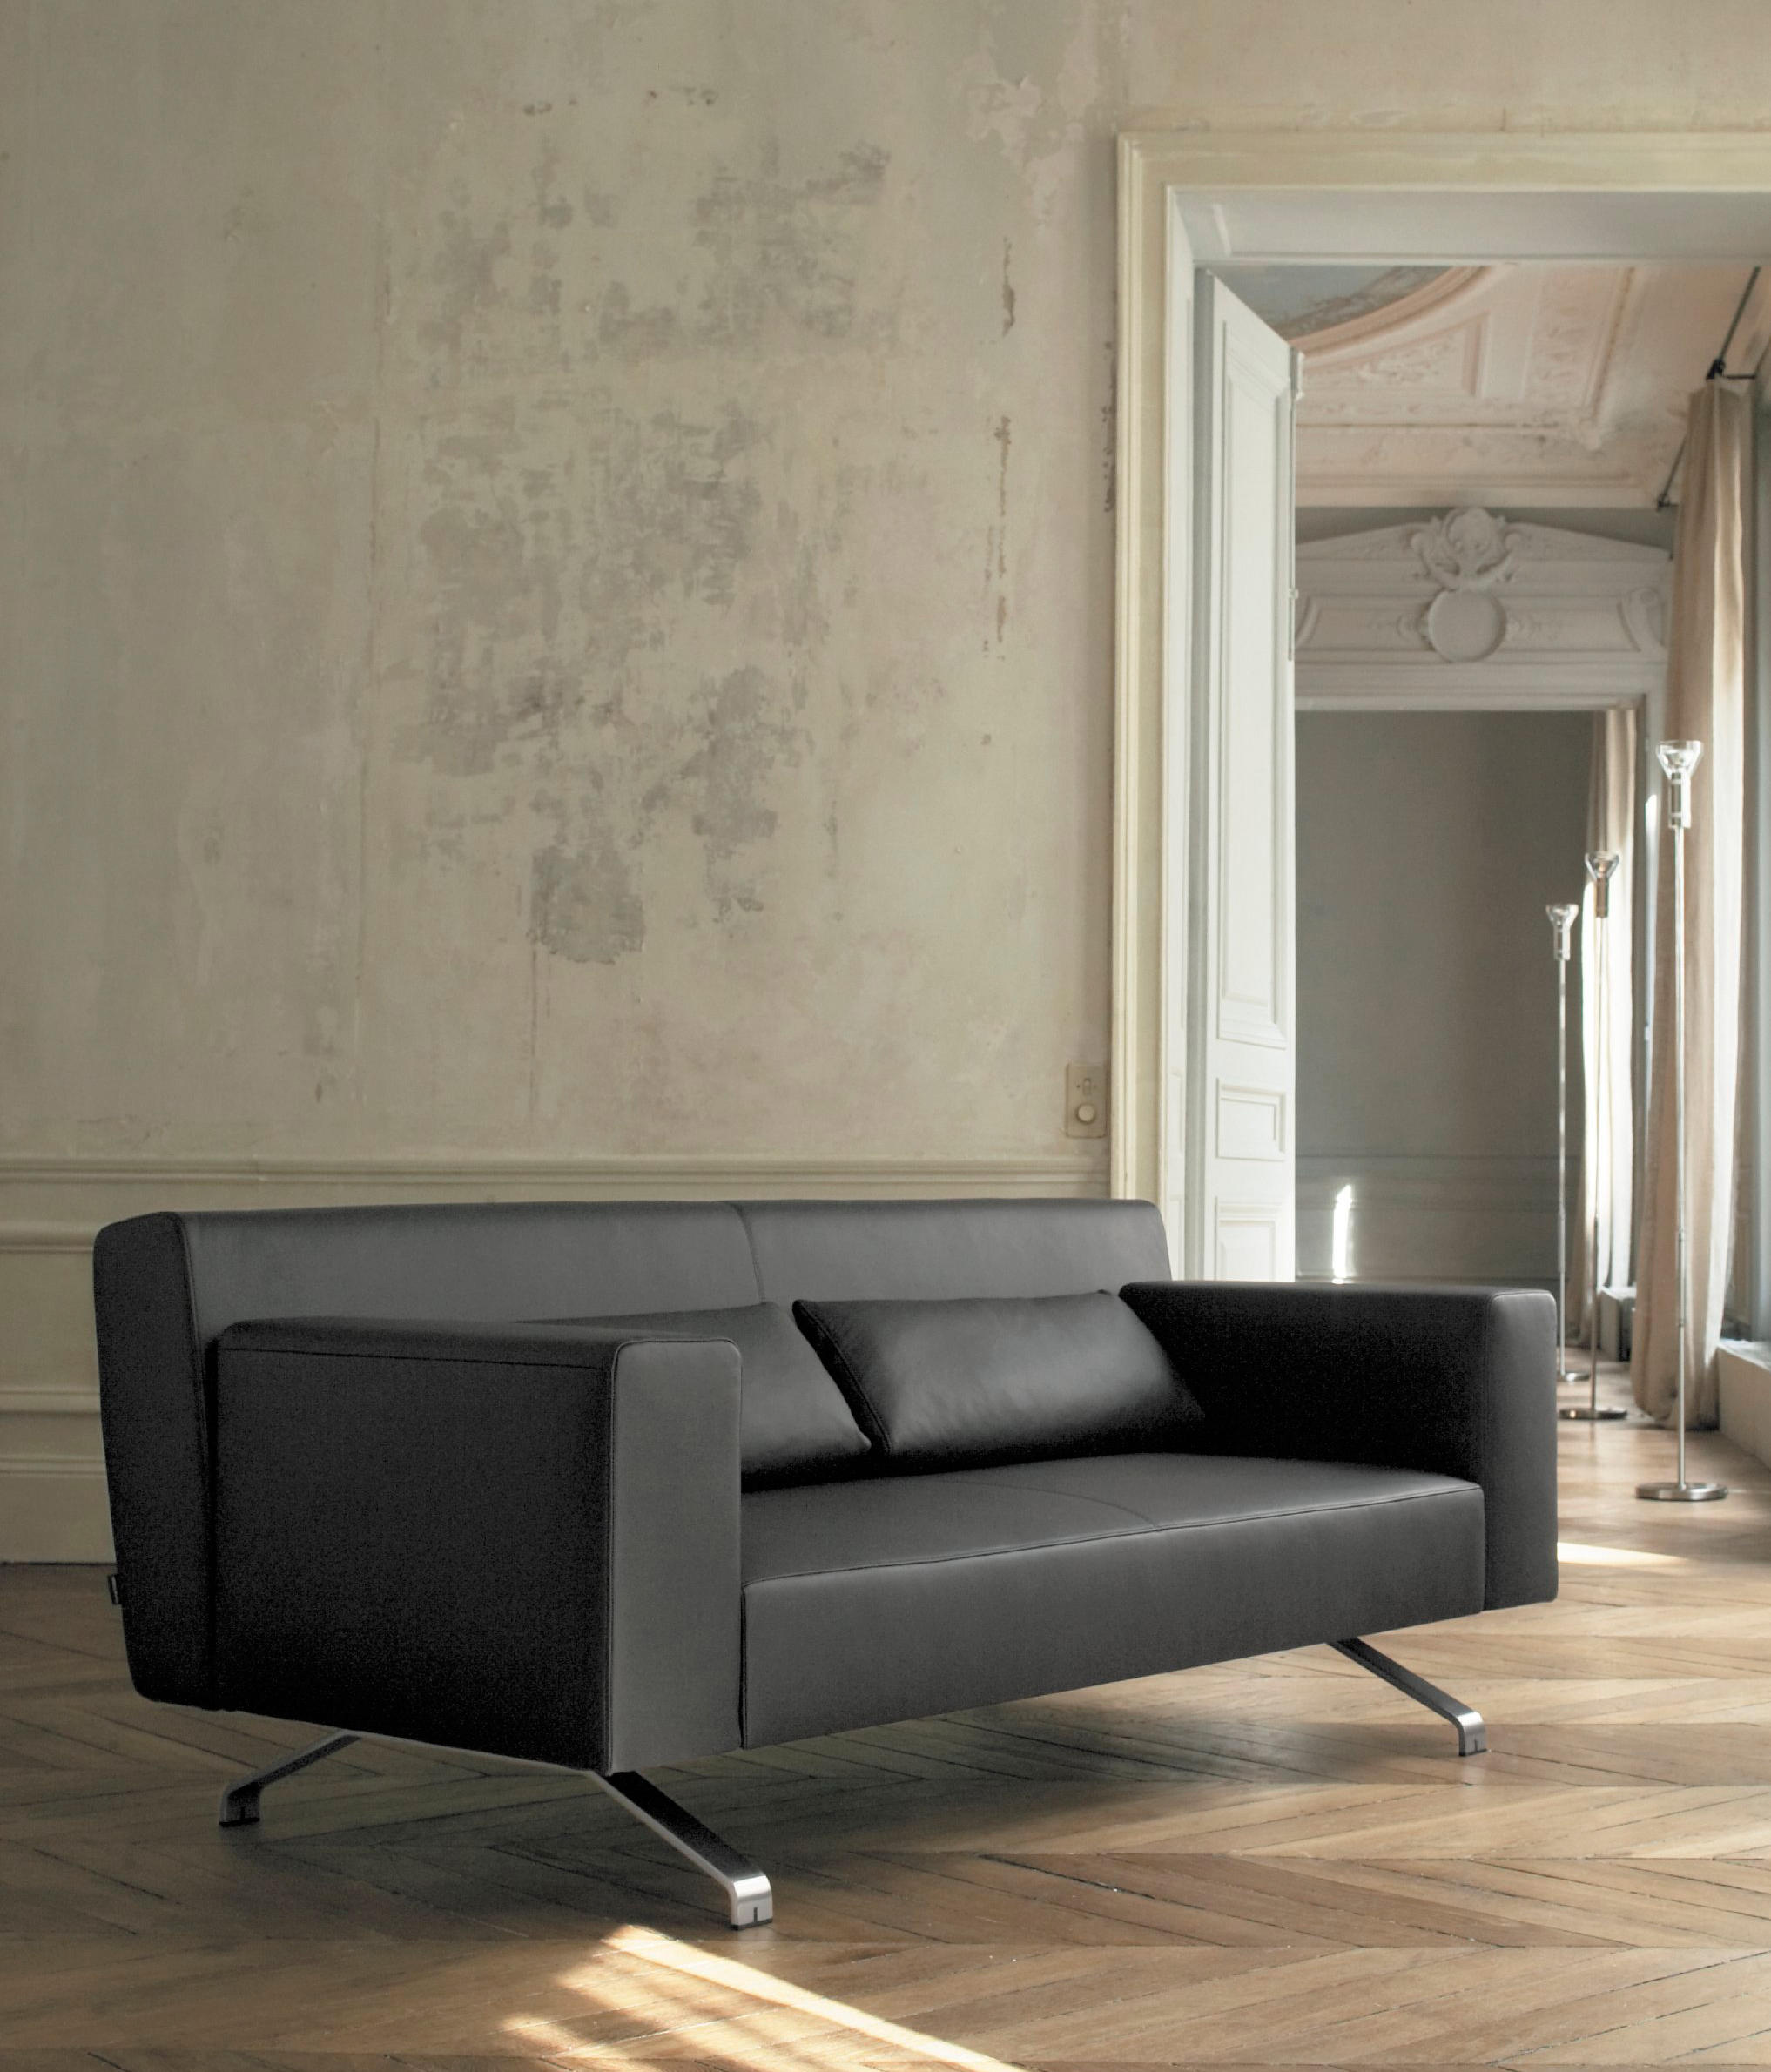 flexus lounge chairs from ligne roset architonic. Black Bedroom Furniture Sets. Home Design Ideas